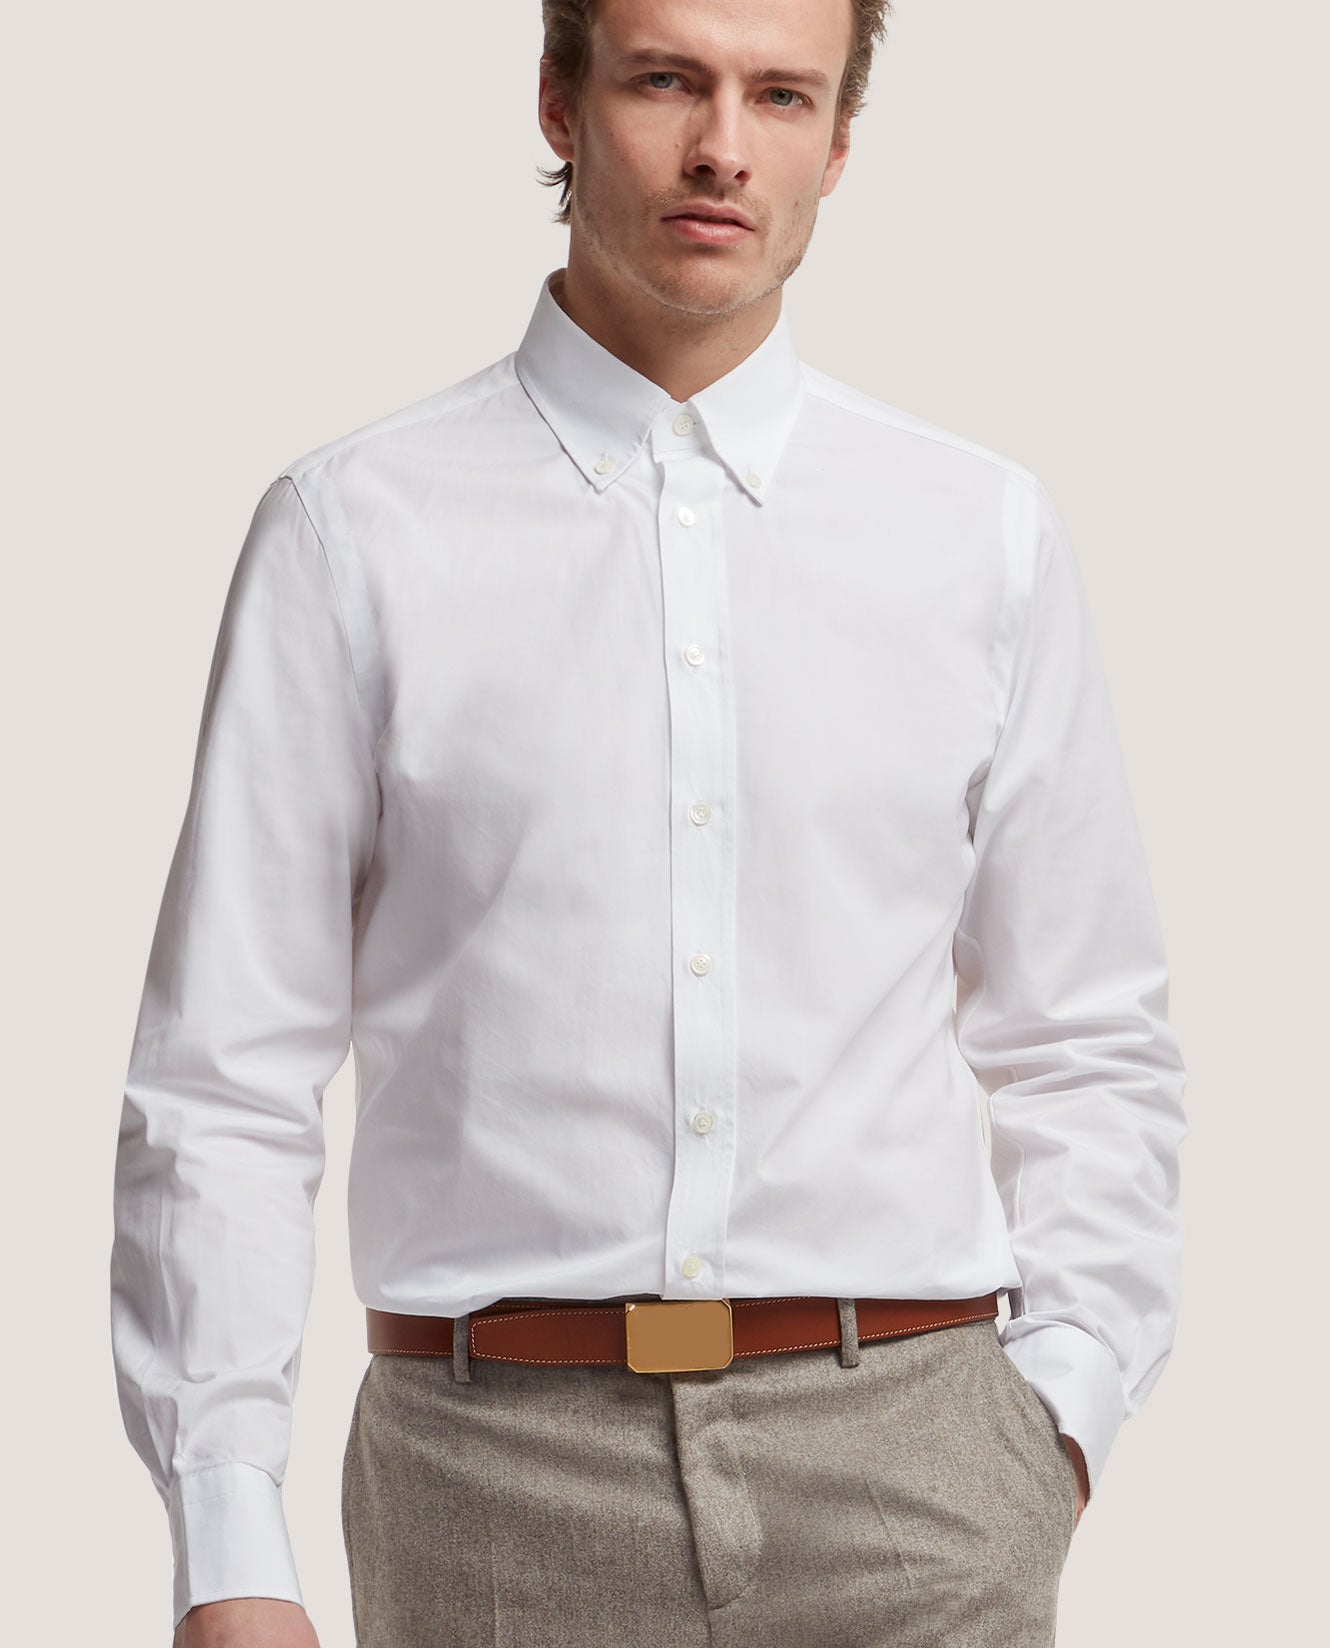 DALE Slim fit shirt | Poplin Cotton